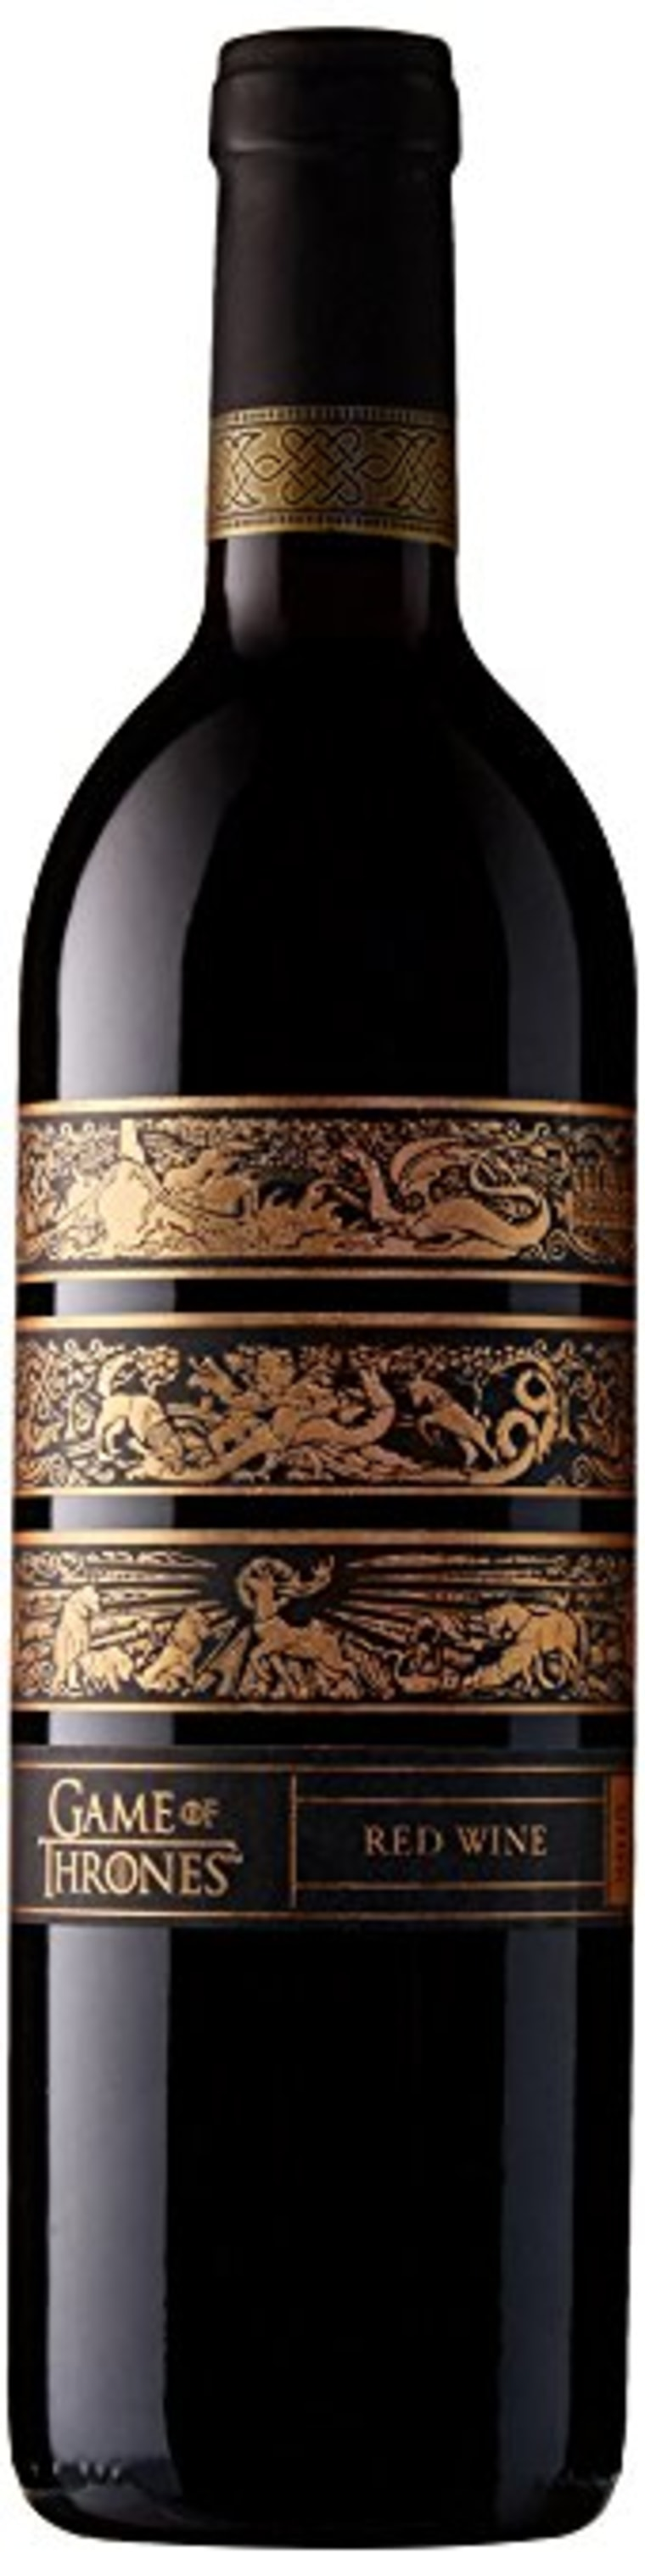 Game Of Thrones 2015 Red Blend, Paso Robles